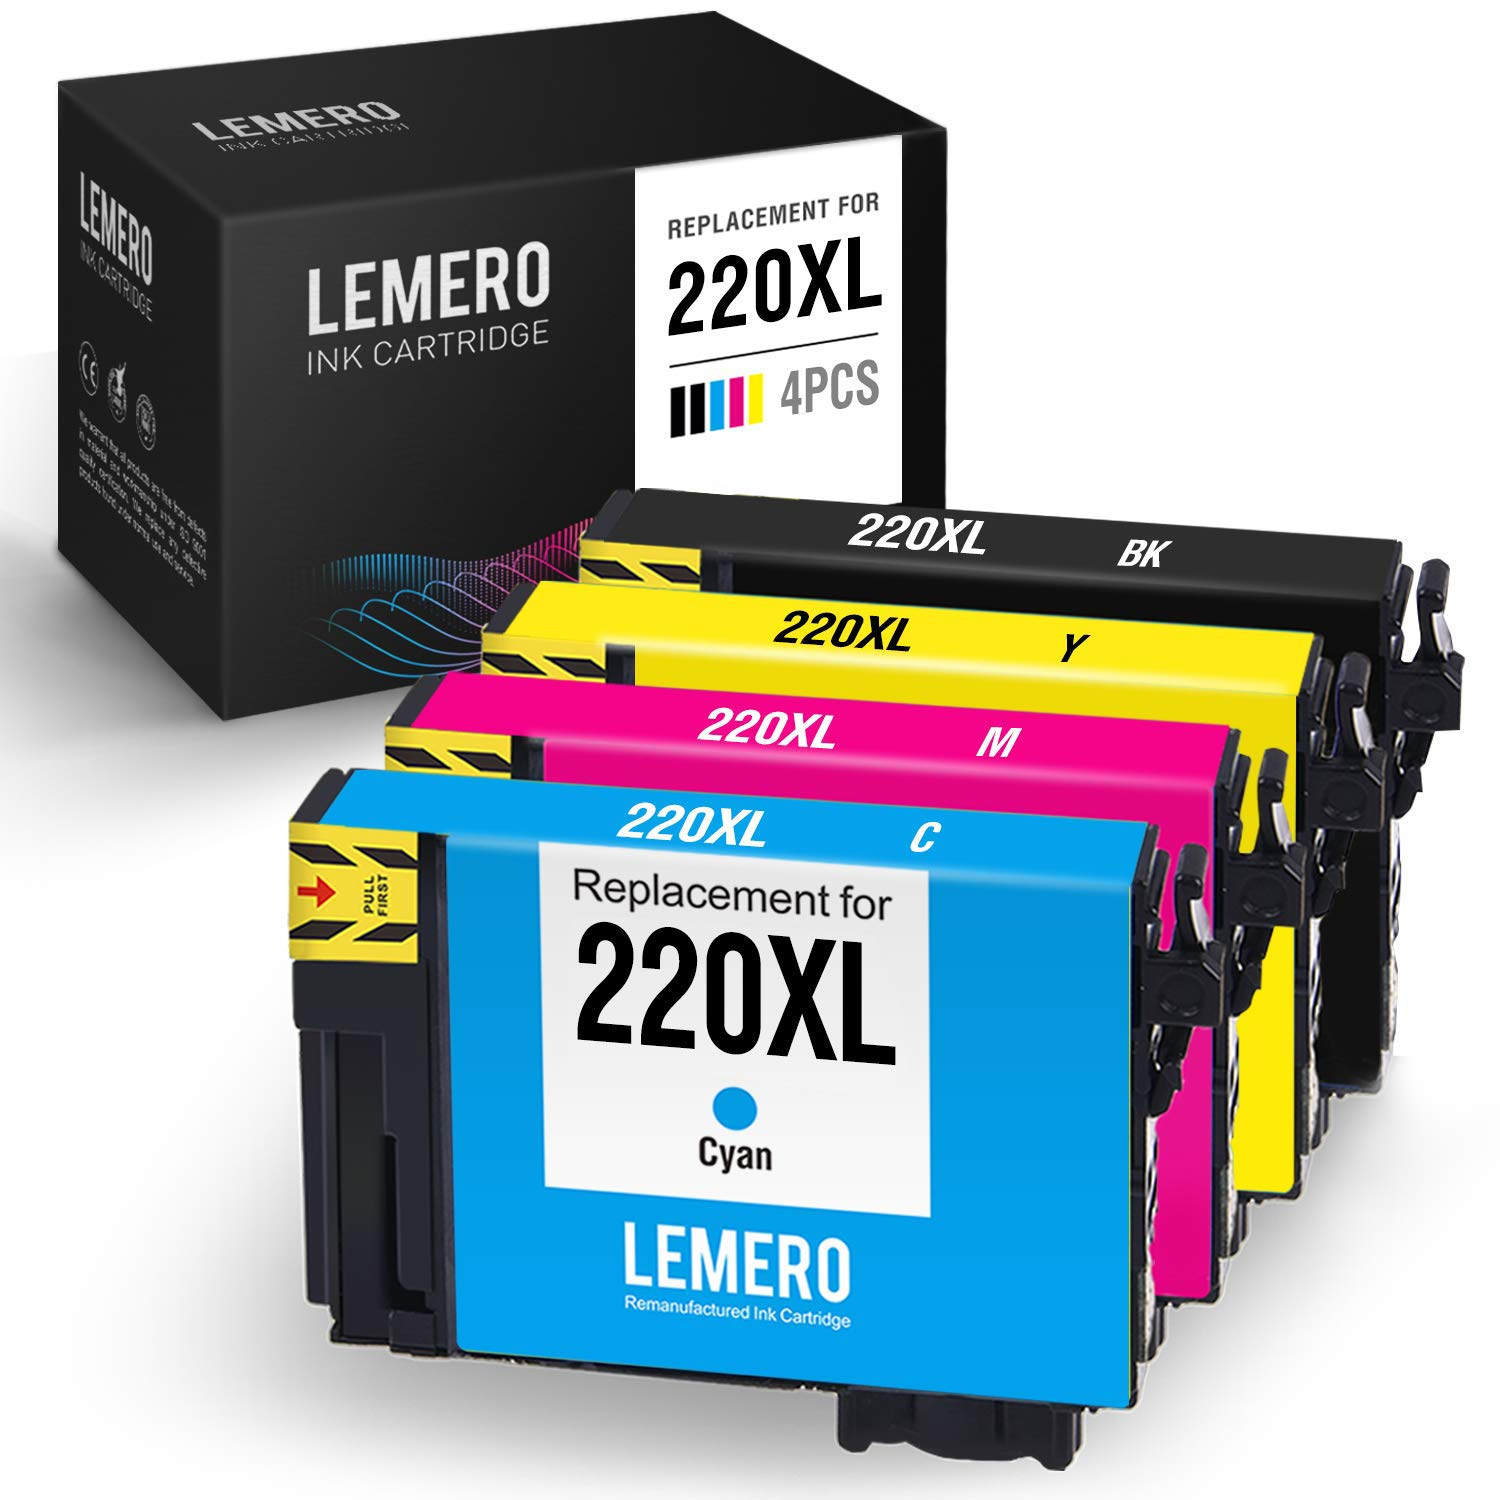 LEMERO Remanufactured Ink Cartridge Replacement for Epson 220 220XL - for Epson Workforce WF-2750 WF-2760 WF-2630 WF-2650 XP-420 XP-320 WF-2660 XP-424 (Black Cyan Magenta Yellow, 4 Pack)